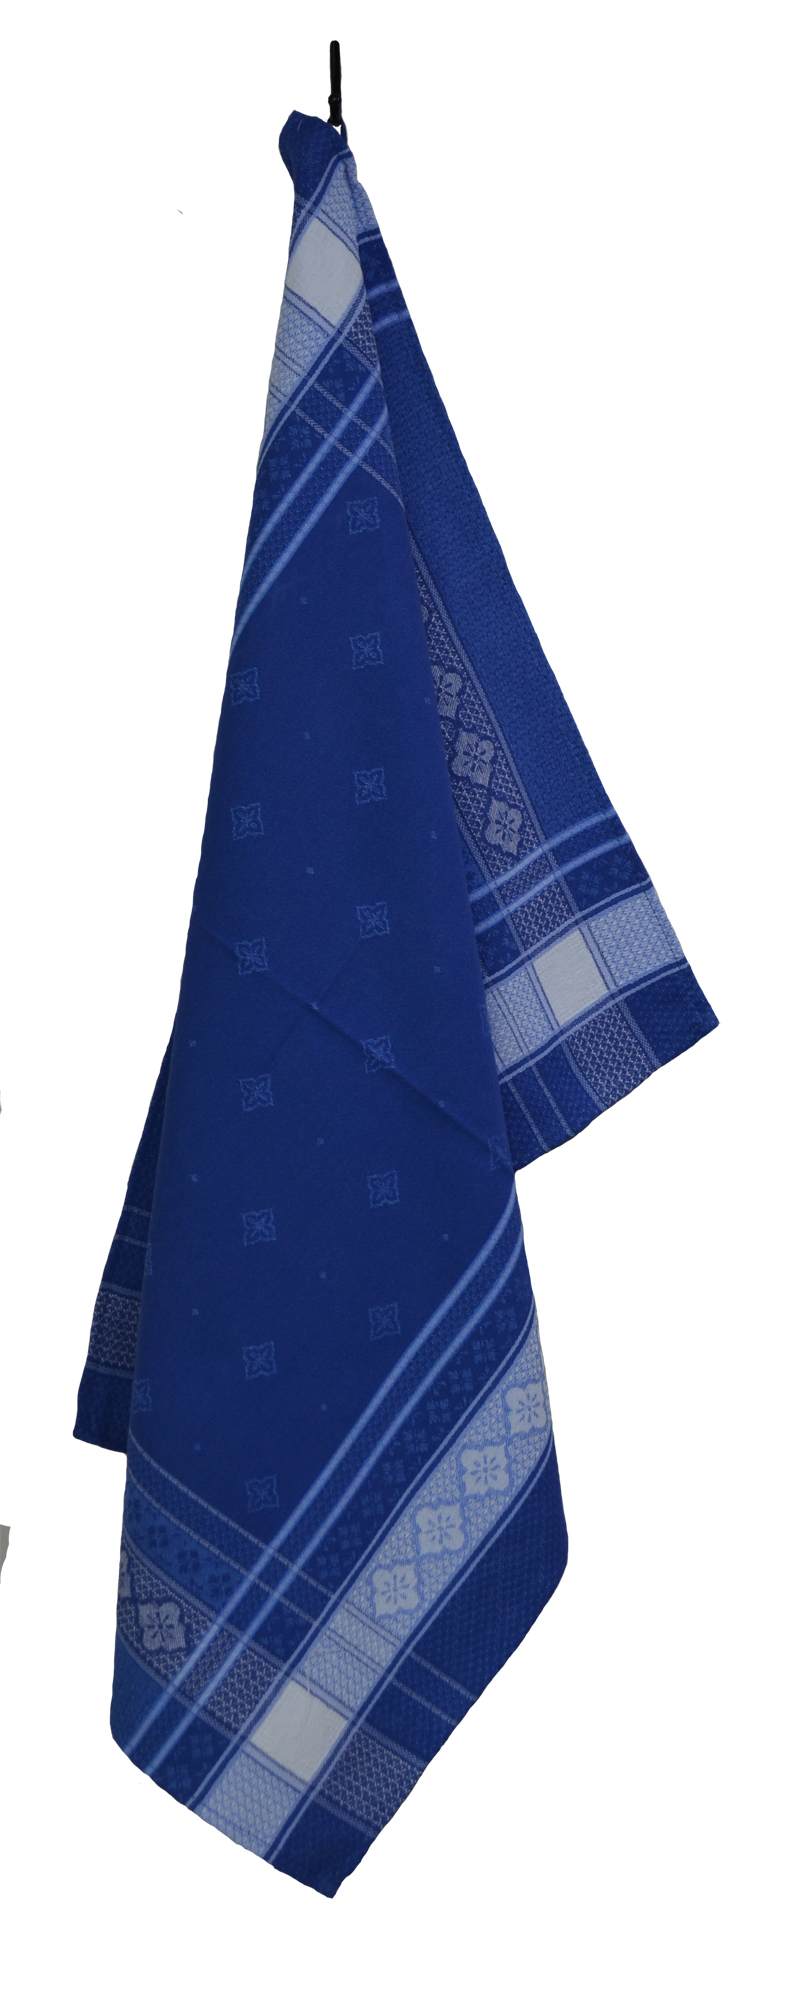 """French Jacquard Tea Towel - Collection """"Callas"""" Blue, Size: 20 x 27 inches, Price CAN$19.95"""